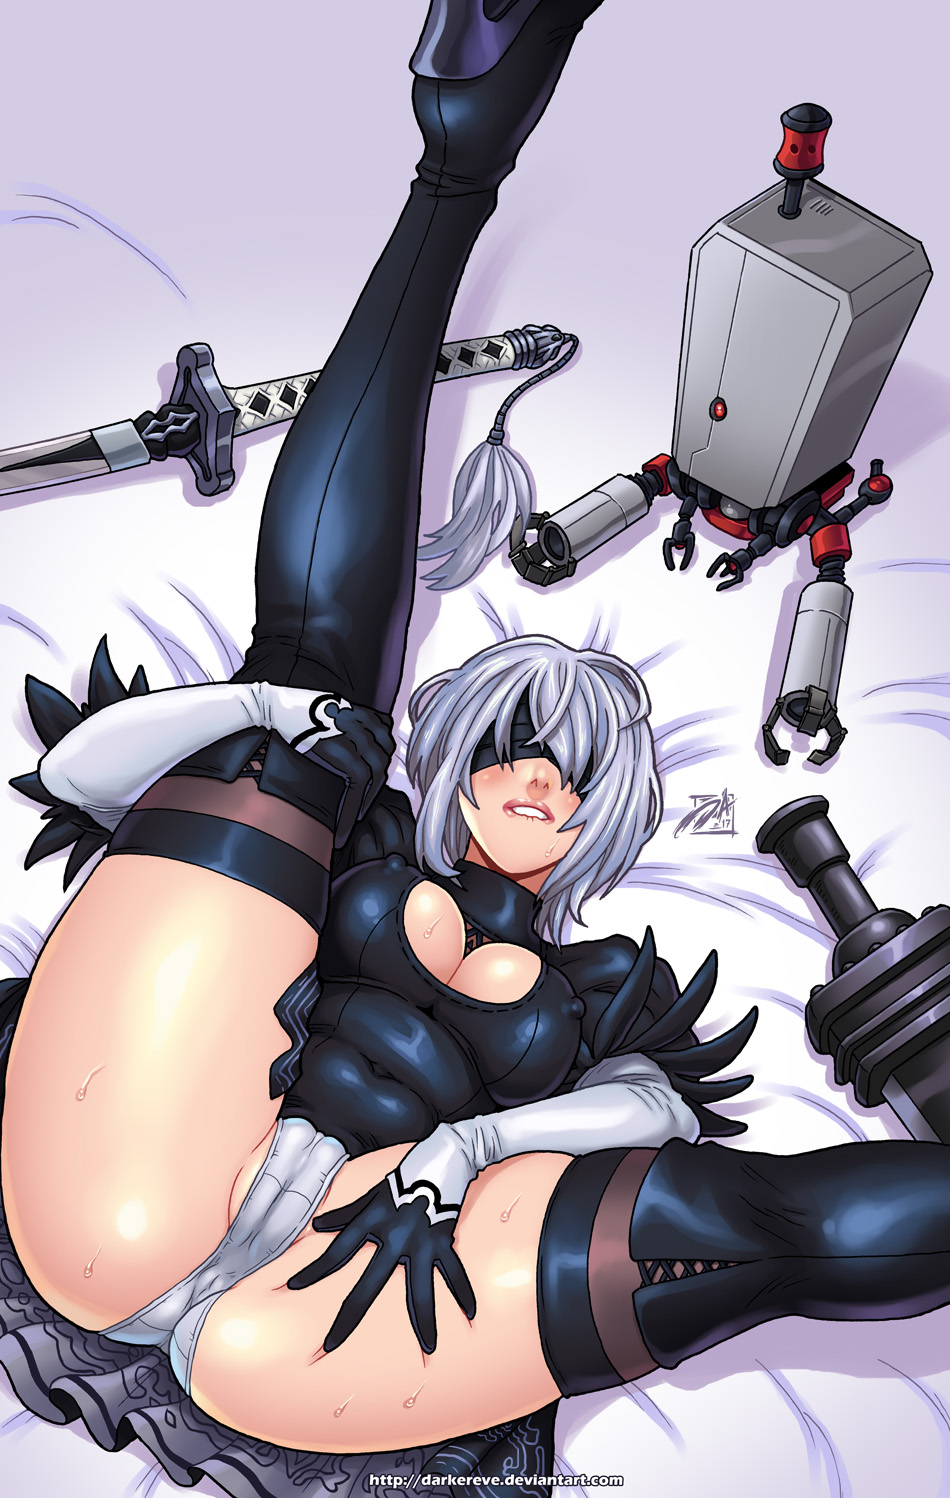 4k 2b nier automata nude wallpaper hd Witch from clash of clans